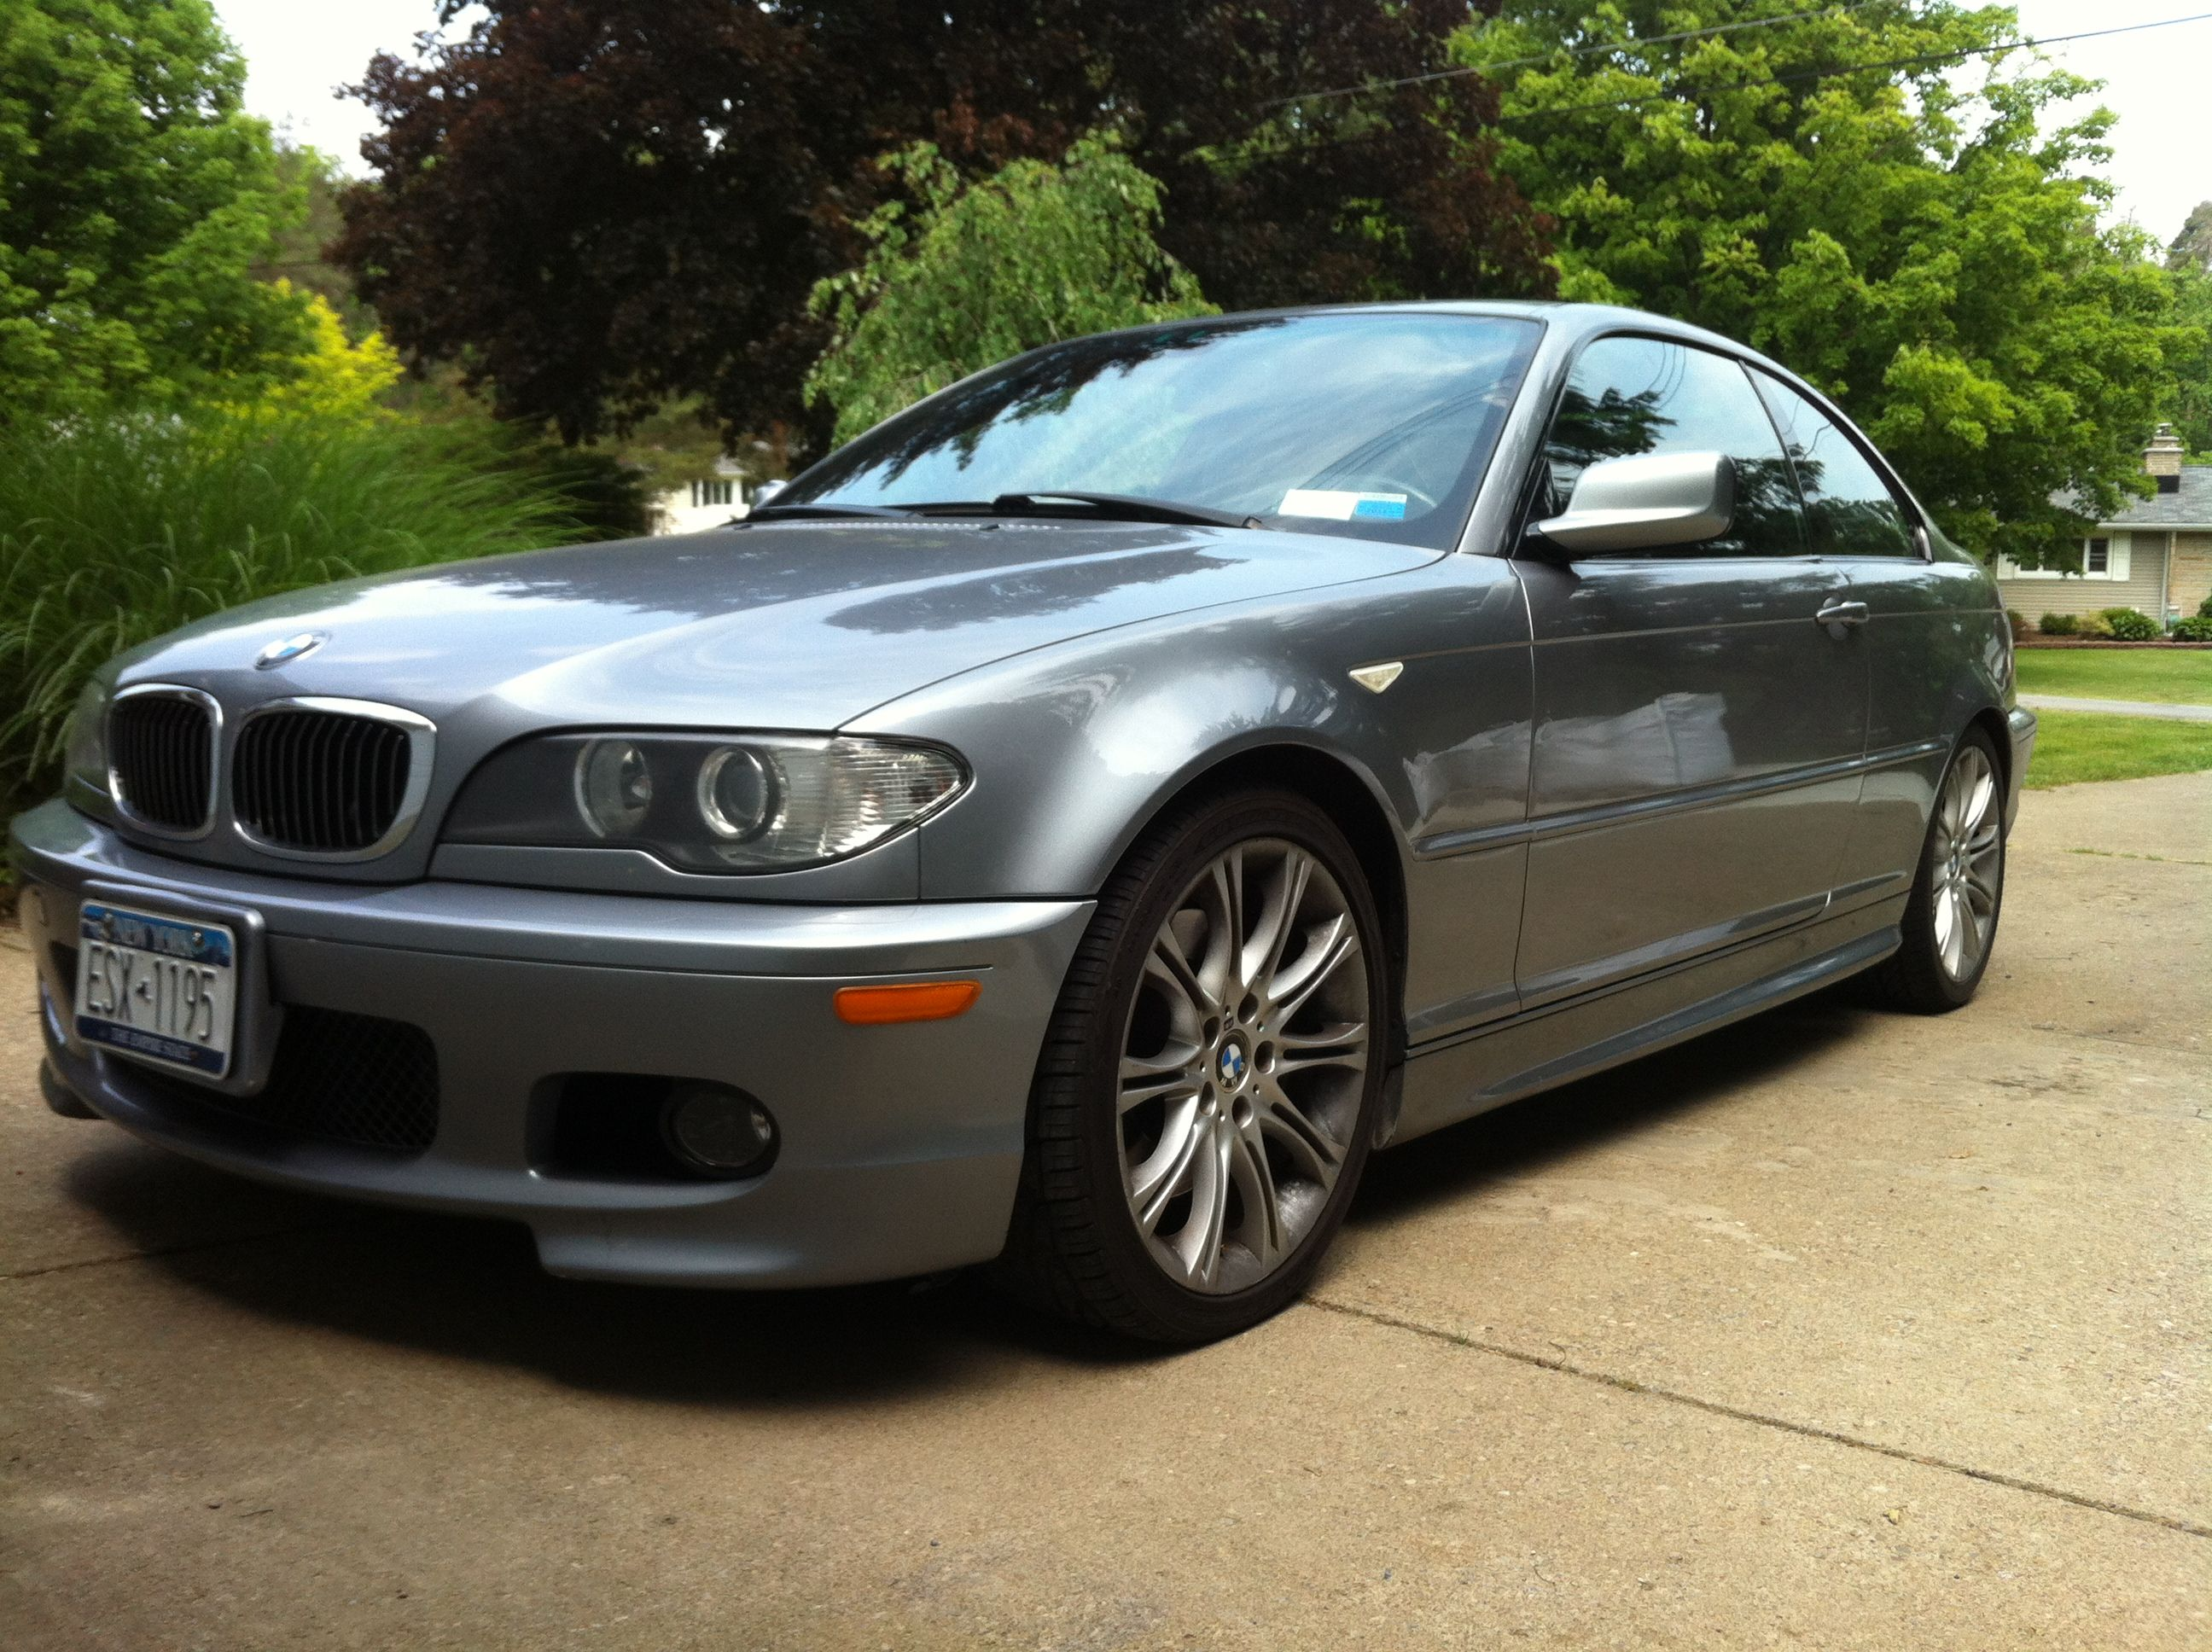 medium resolution of bmw 330ci zhp mine was a 330cic convertible in this color best car i ever owned